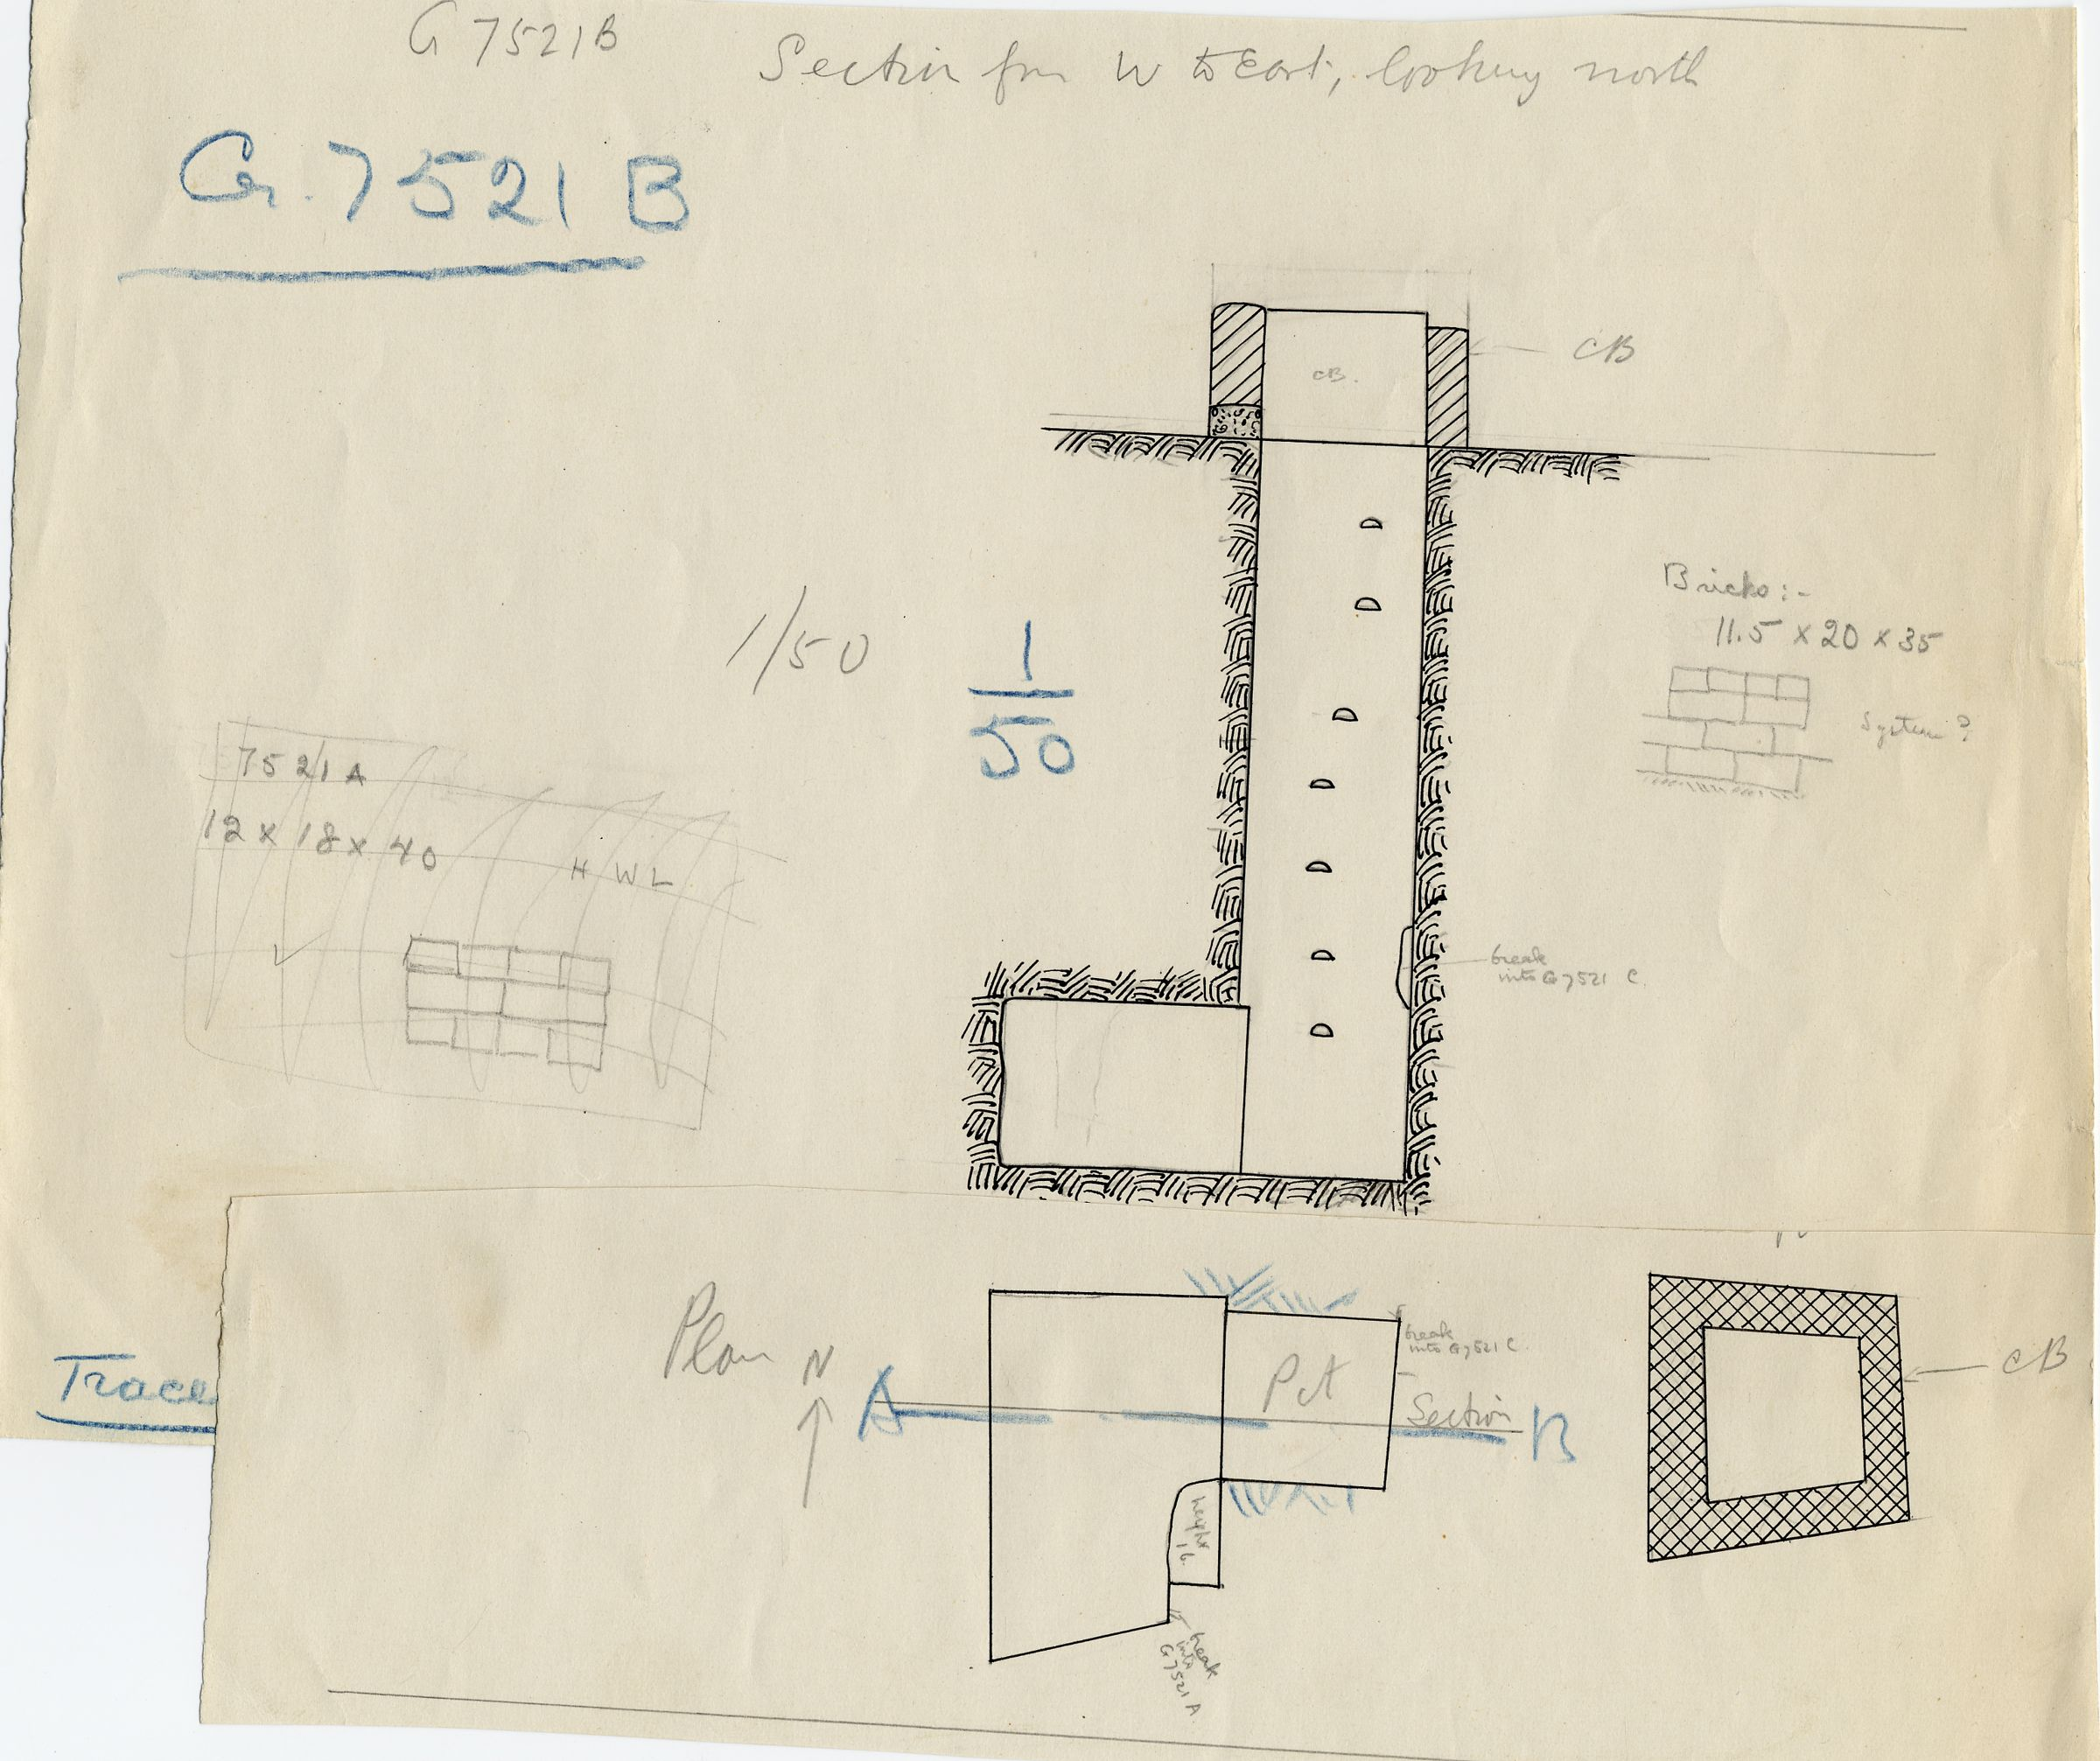 Maps and plans: G 7521, Shaft B